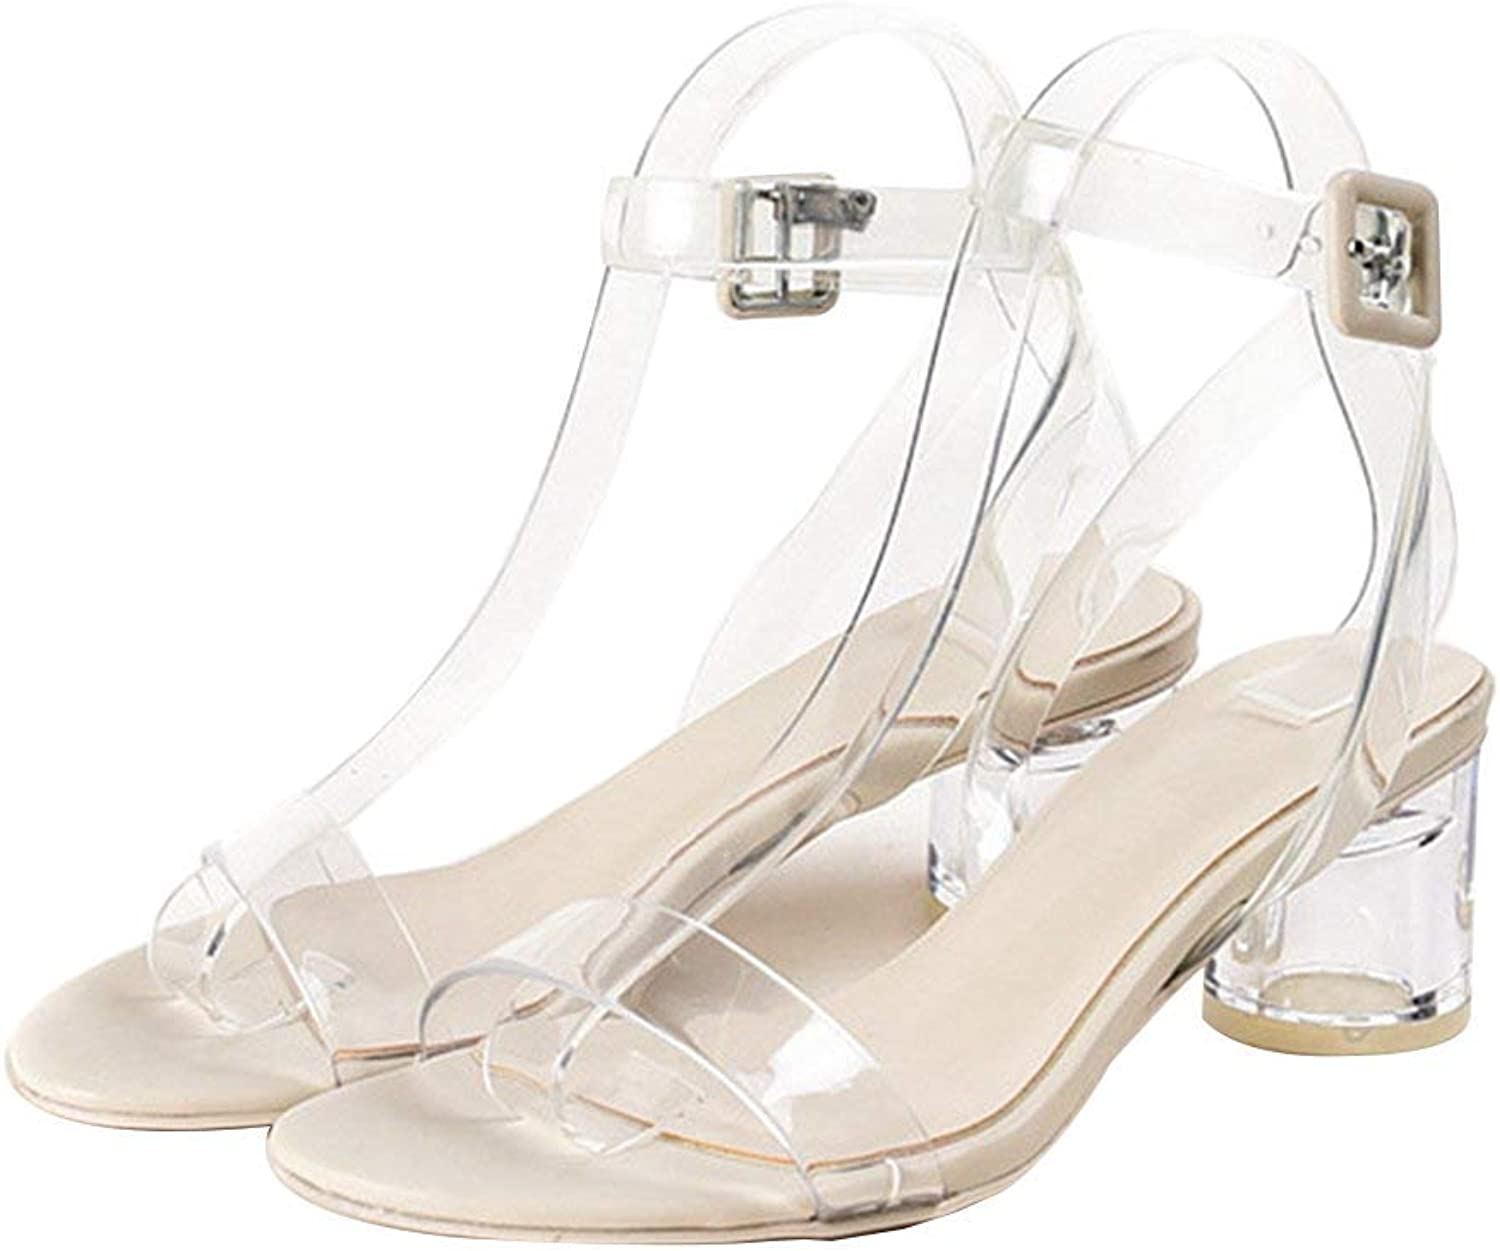 Elsa Wilcox Womens Ankle Strap Adjustable Buckle Peep Toe Low Chunky Sandal Clear Strappy Block Heel